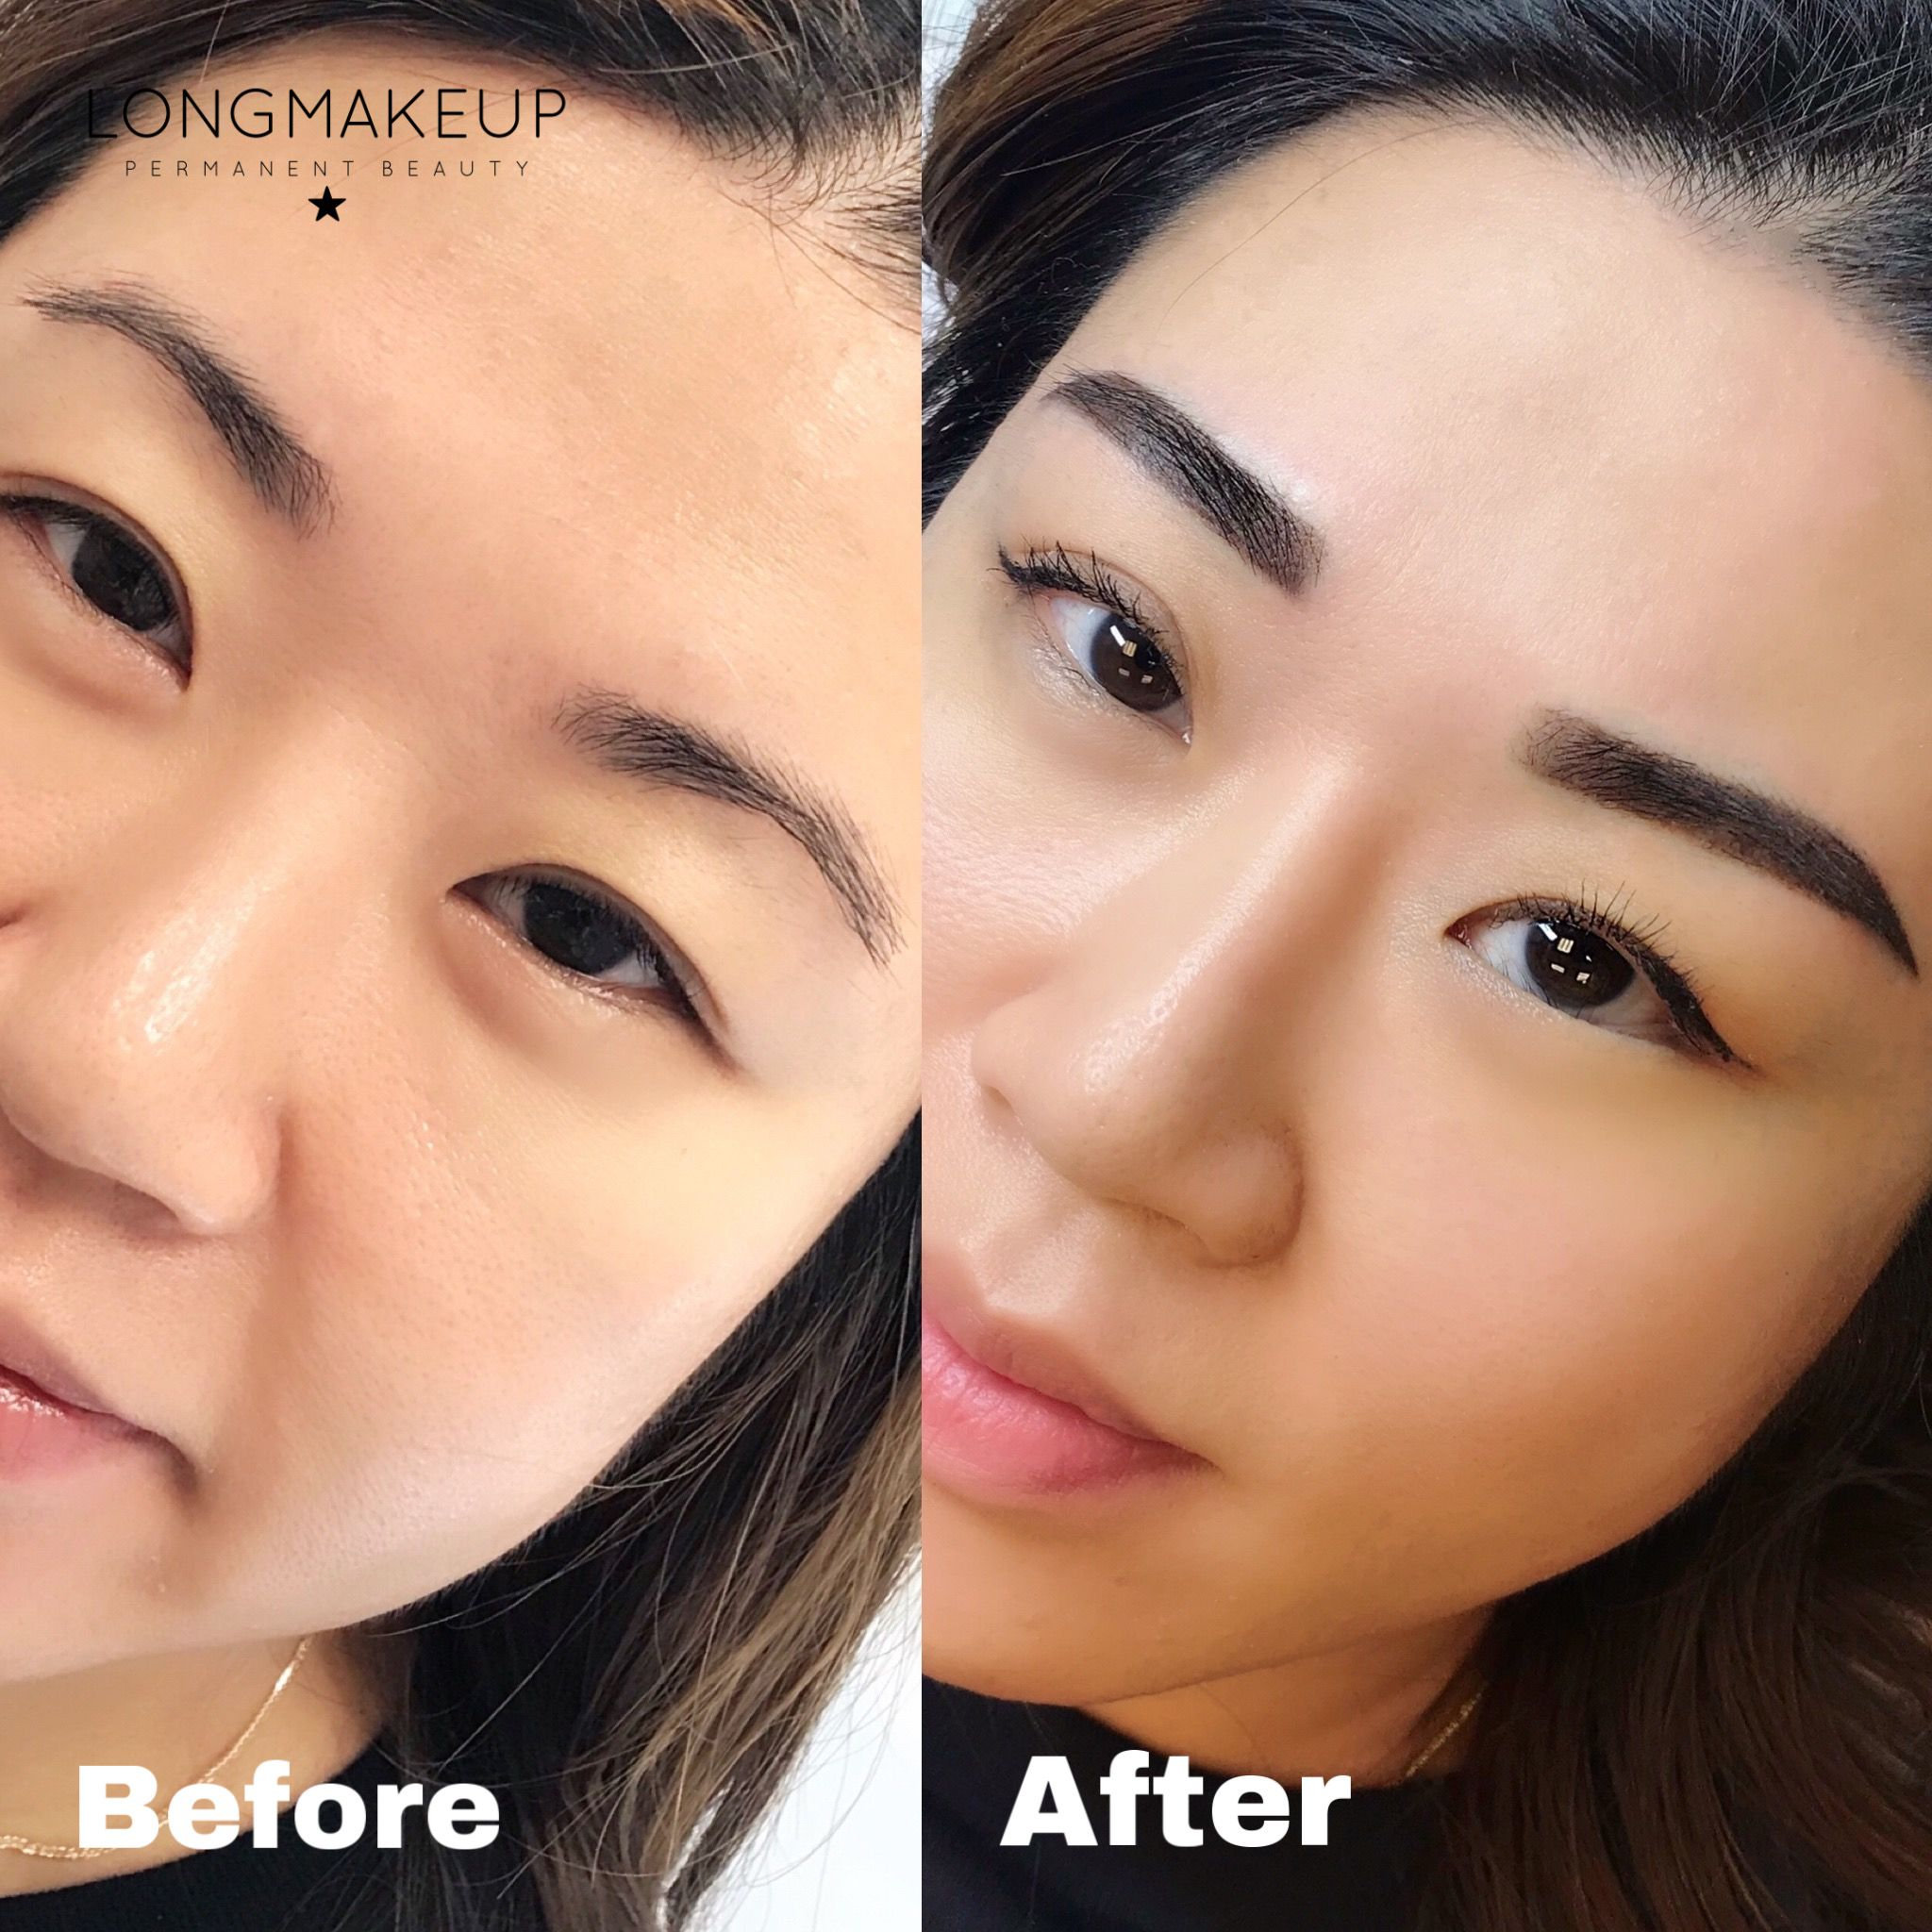 Powder brows before and after